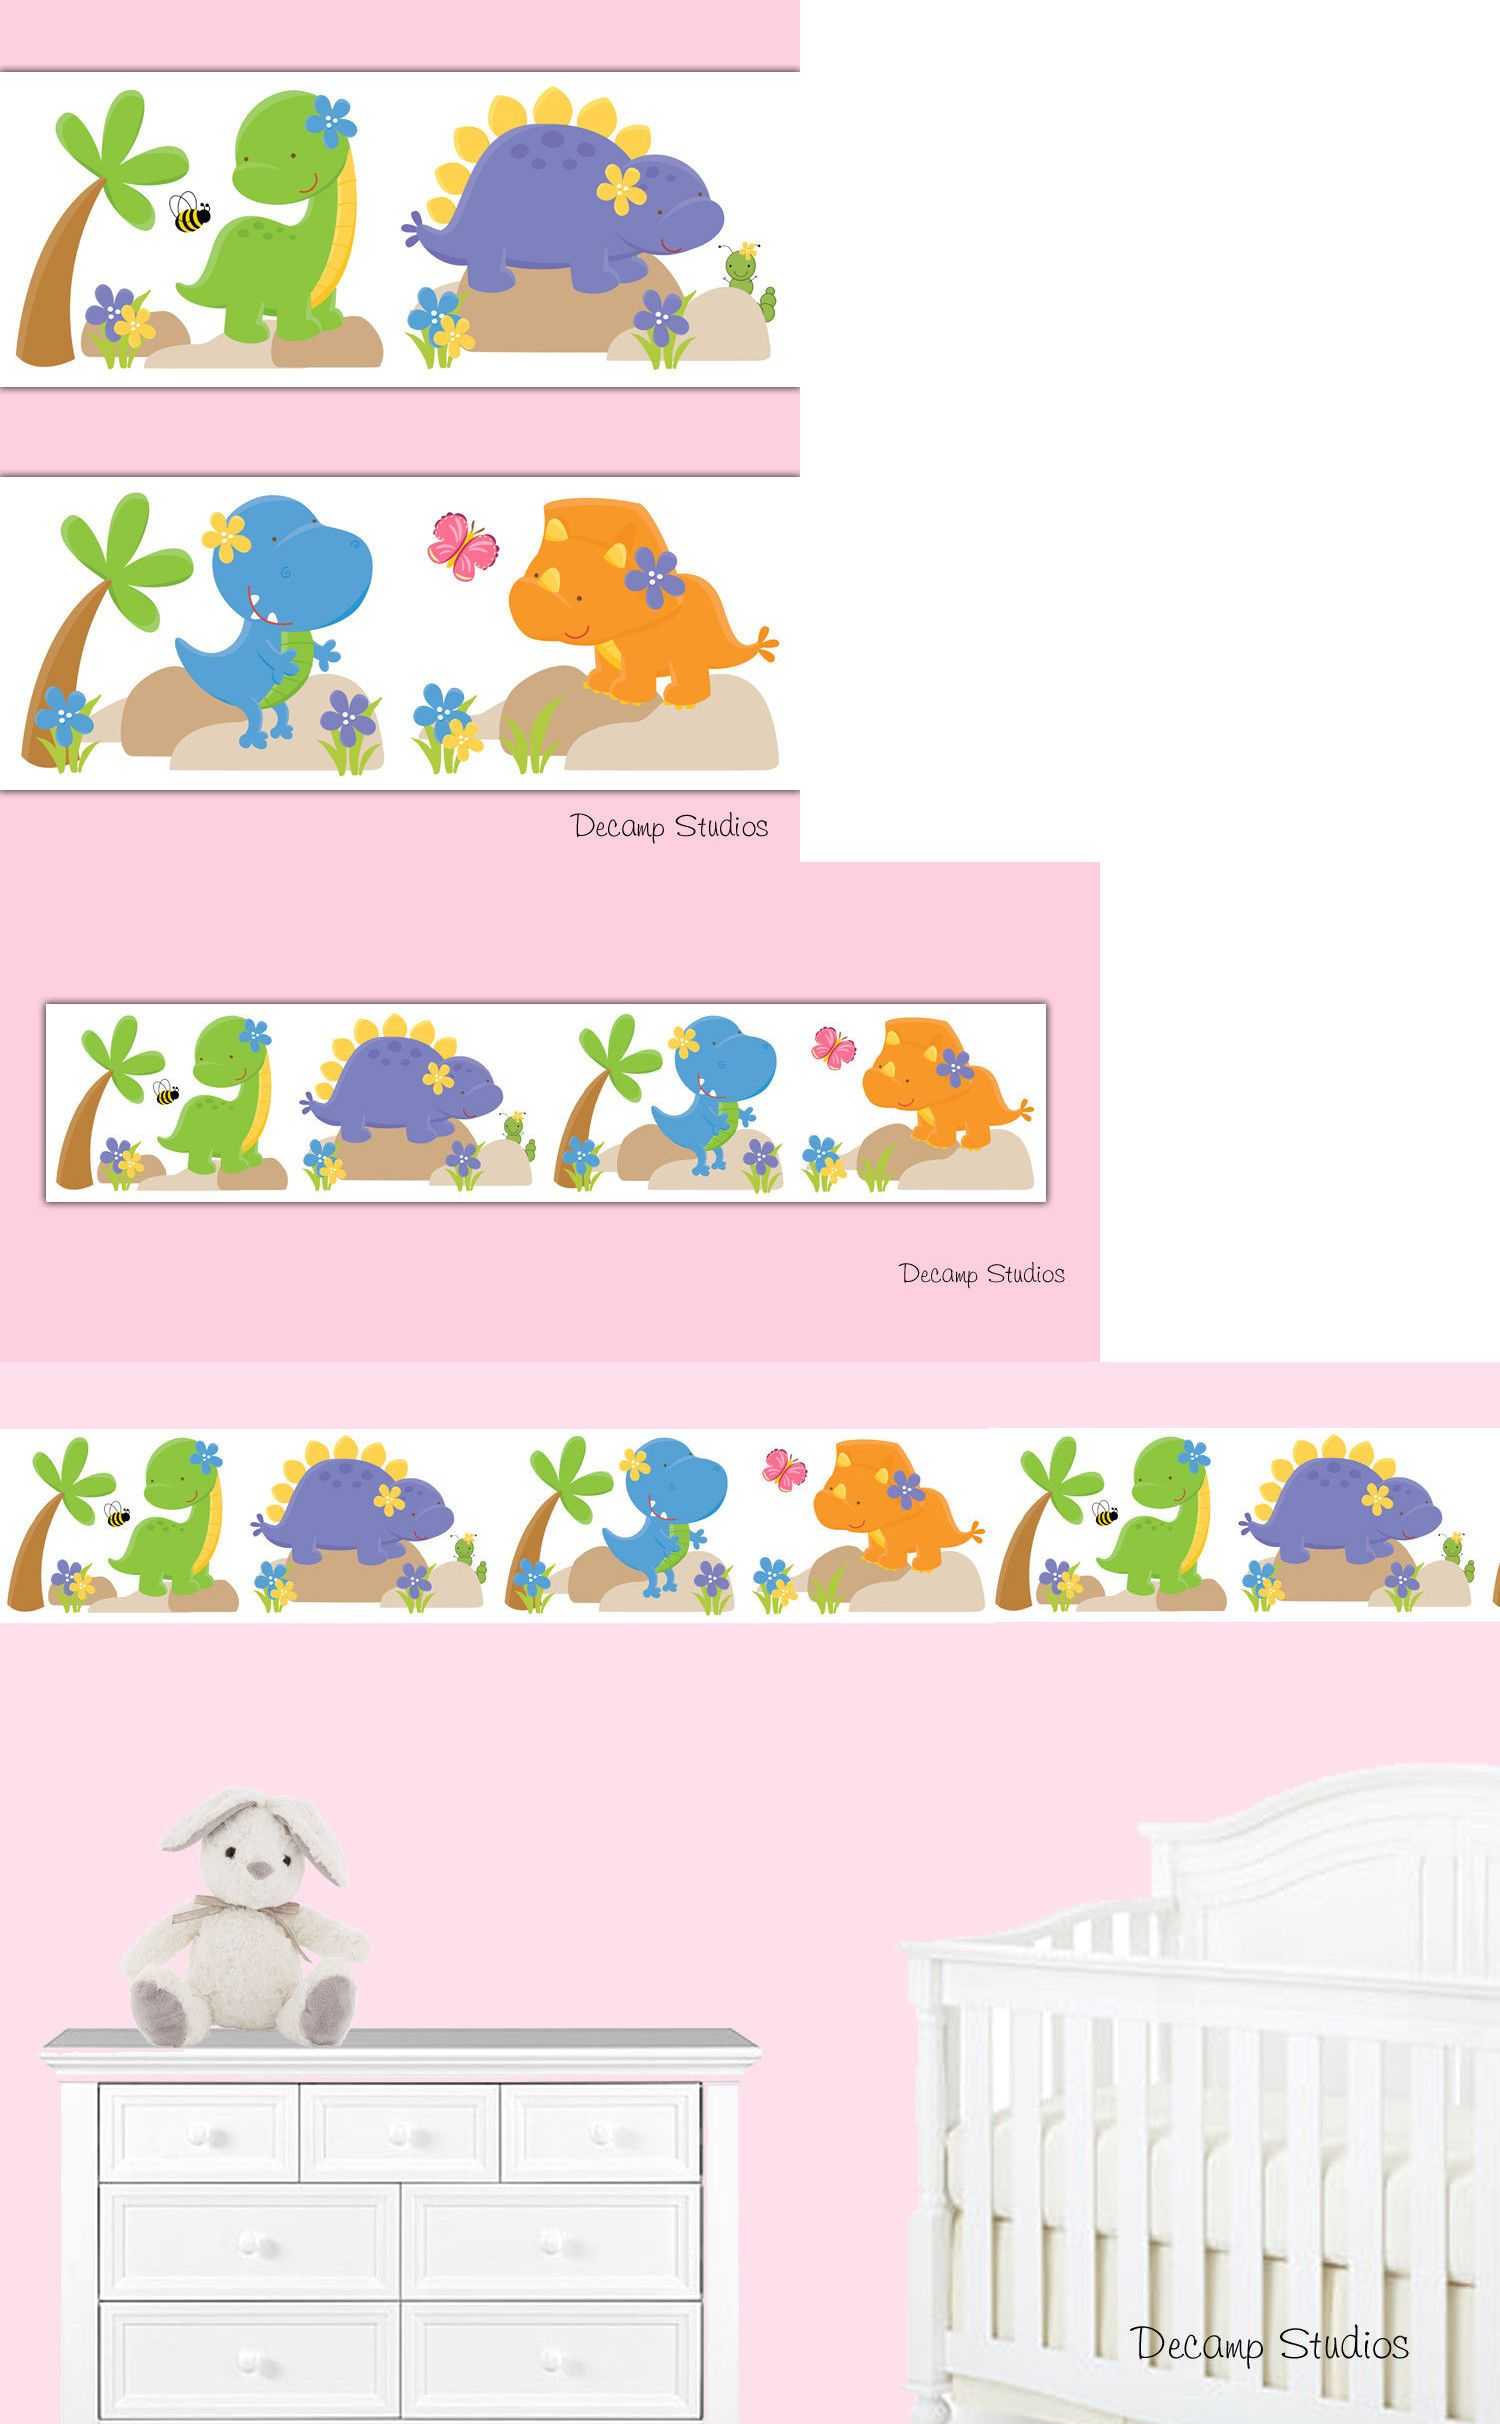 Bedroom Playroom And Dorm D Cor 115970 Dinosaur Nursery Wallpaper Border Wall Art Decals Kids Room Stickers It Now Only 10 On Ebay